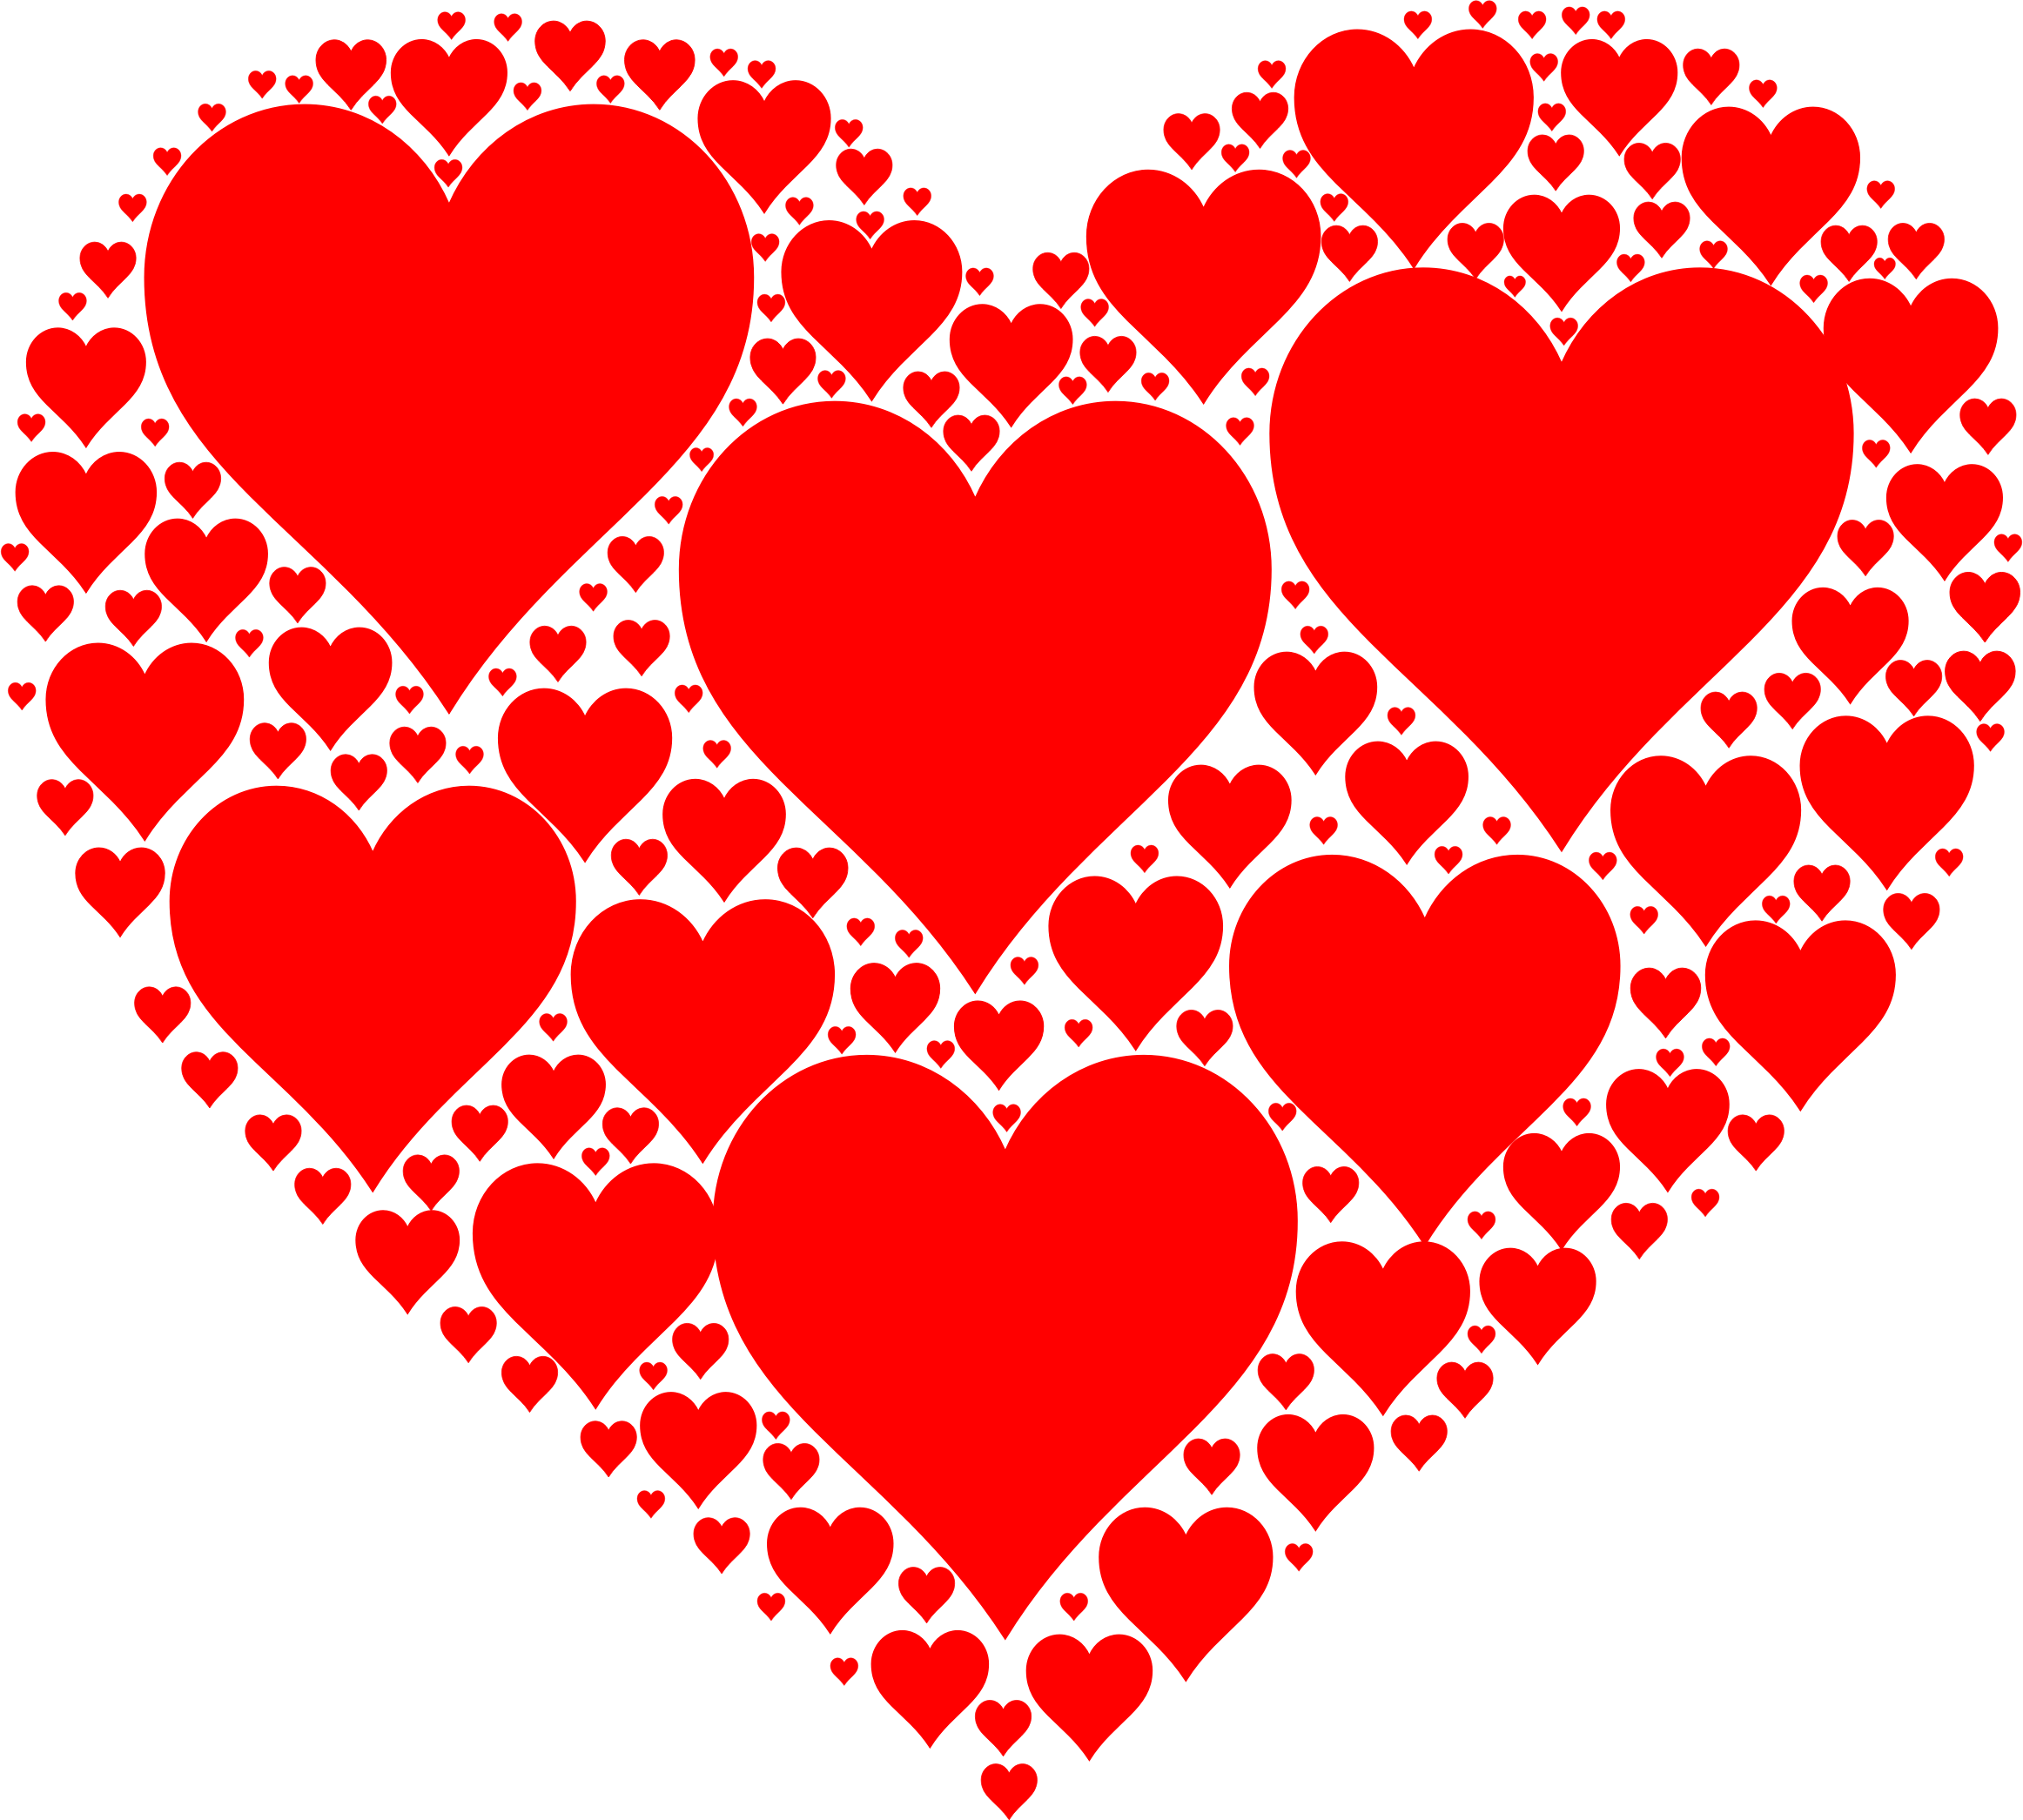 Awesome Heart Pictures Images And Wallpapers Visualsays pluspng.com - HD Wallpapers - Heart Jpg PNG HD